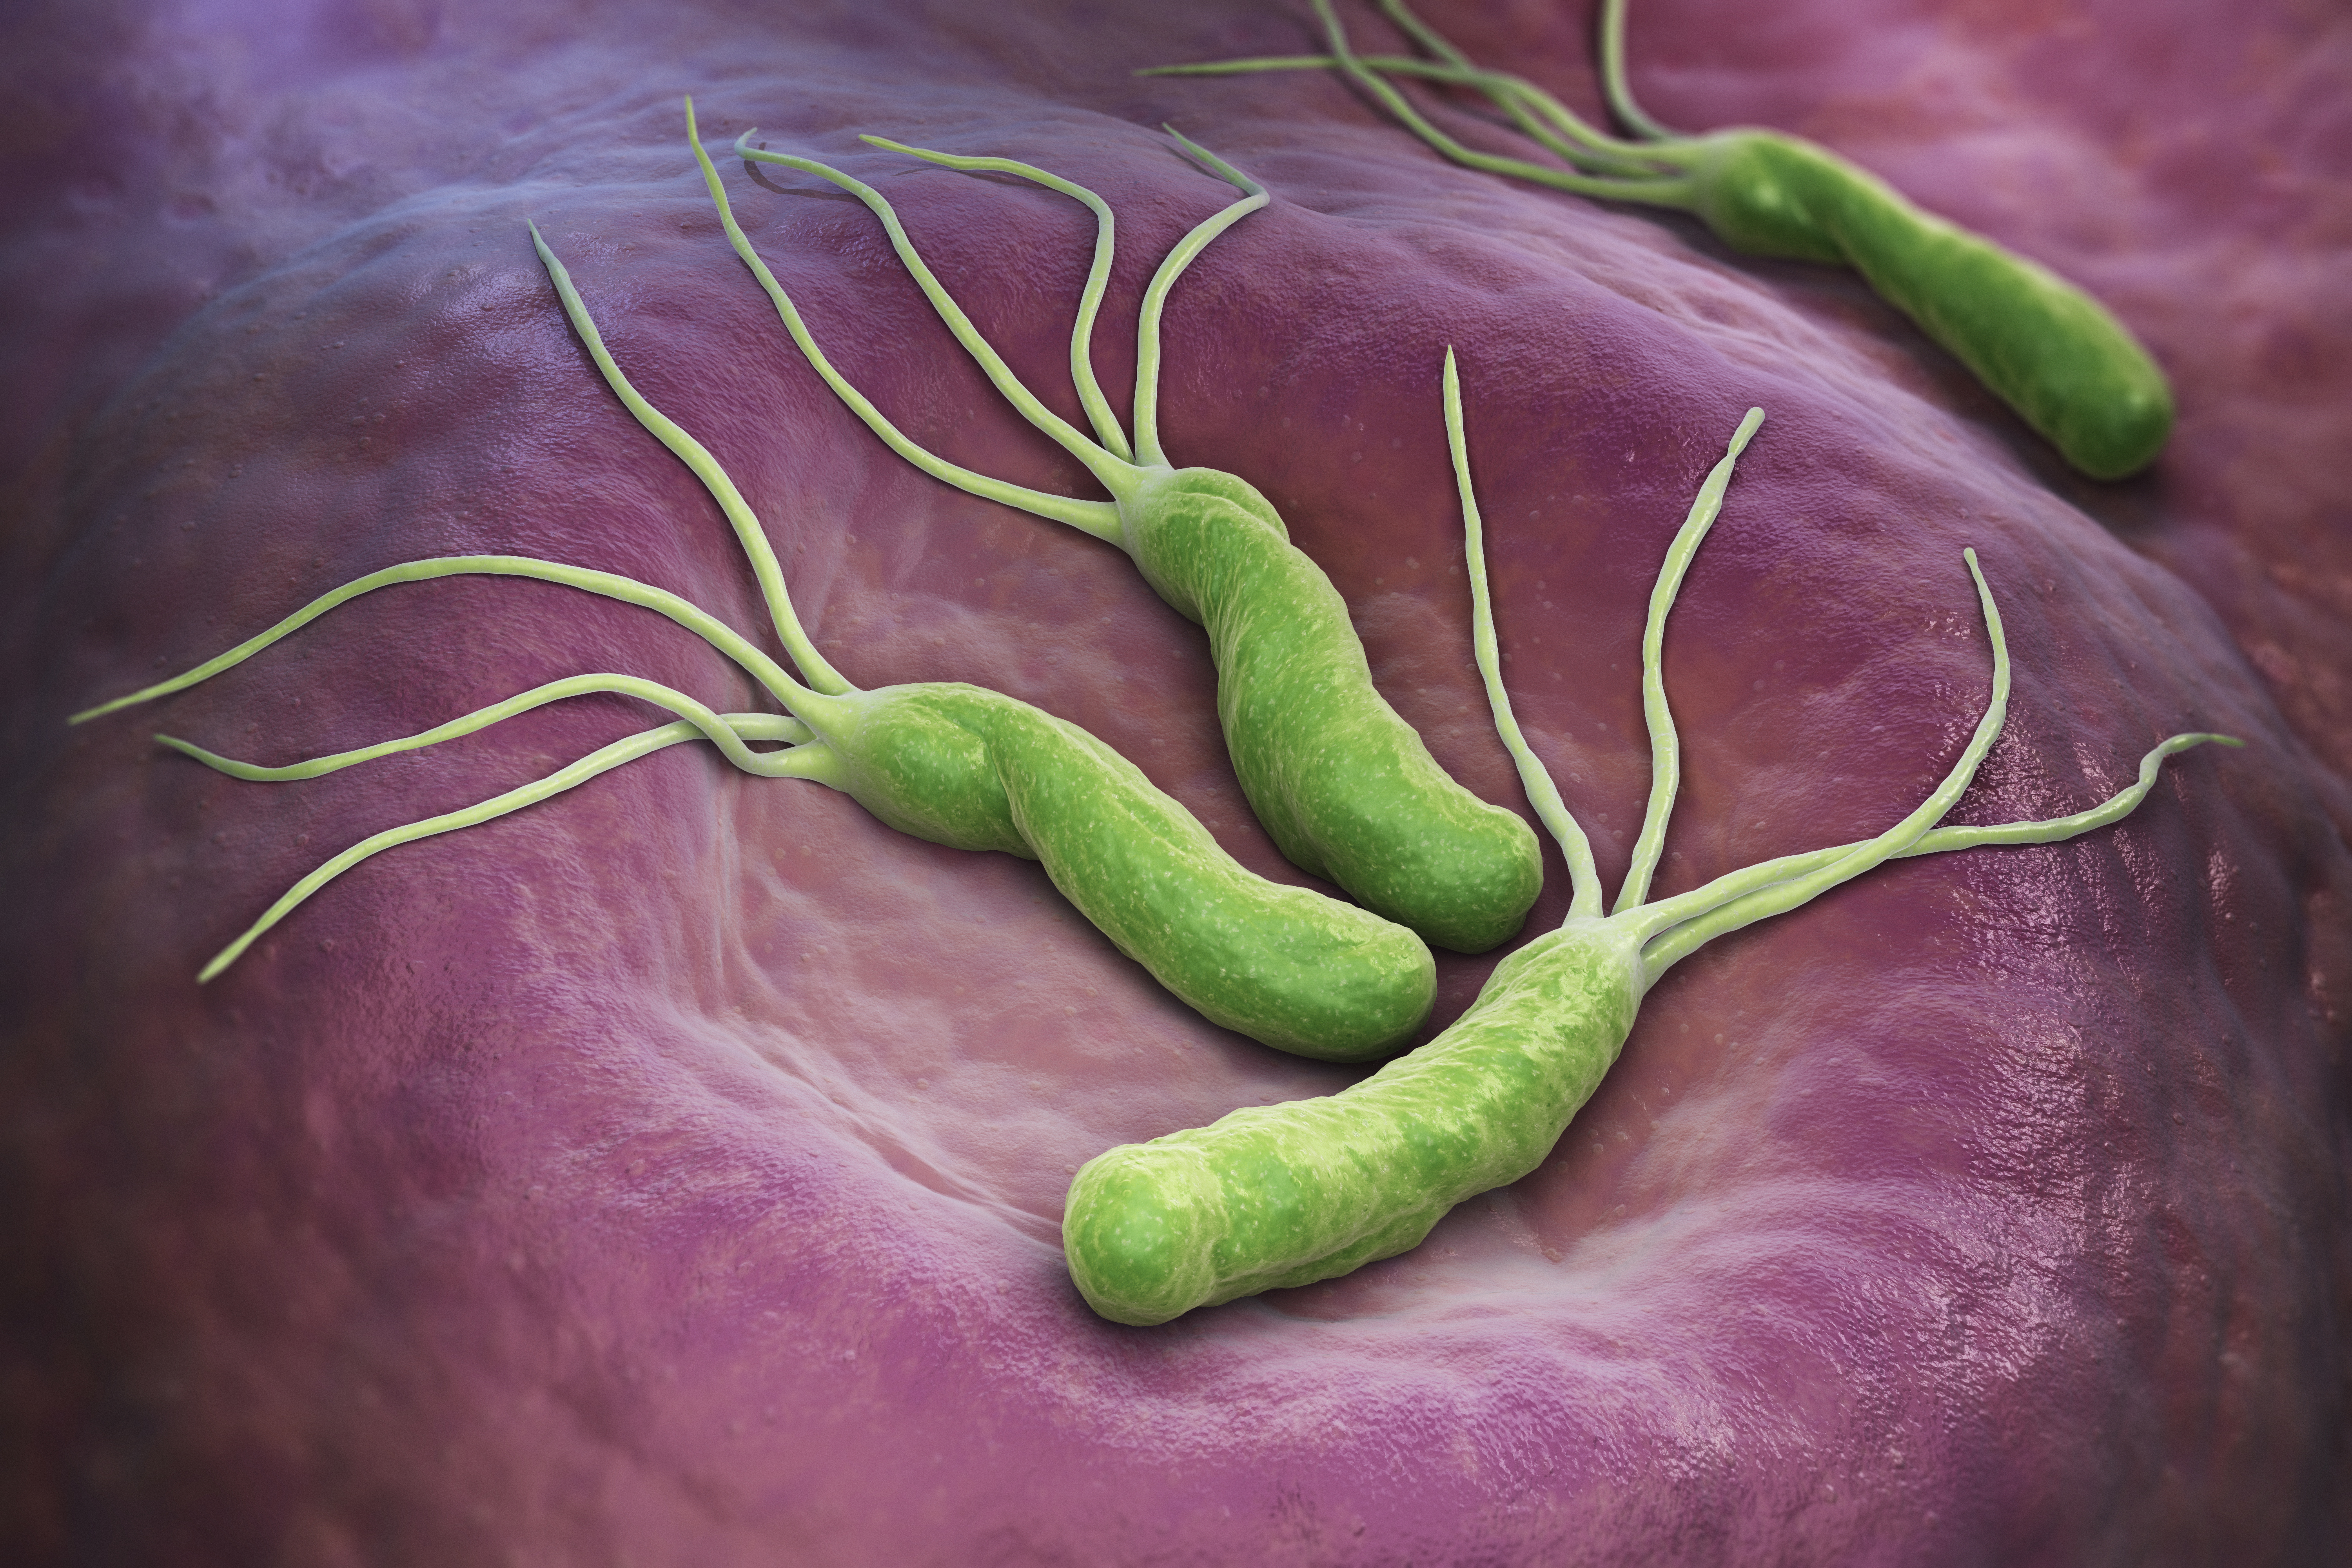 A Stomach Bacteria Threatens Nairobi's Residents. What Can Be Done to Stop It